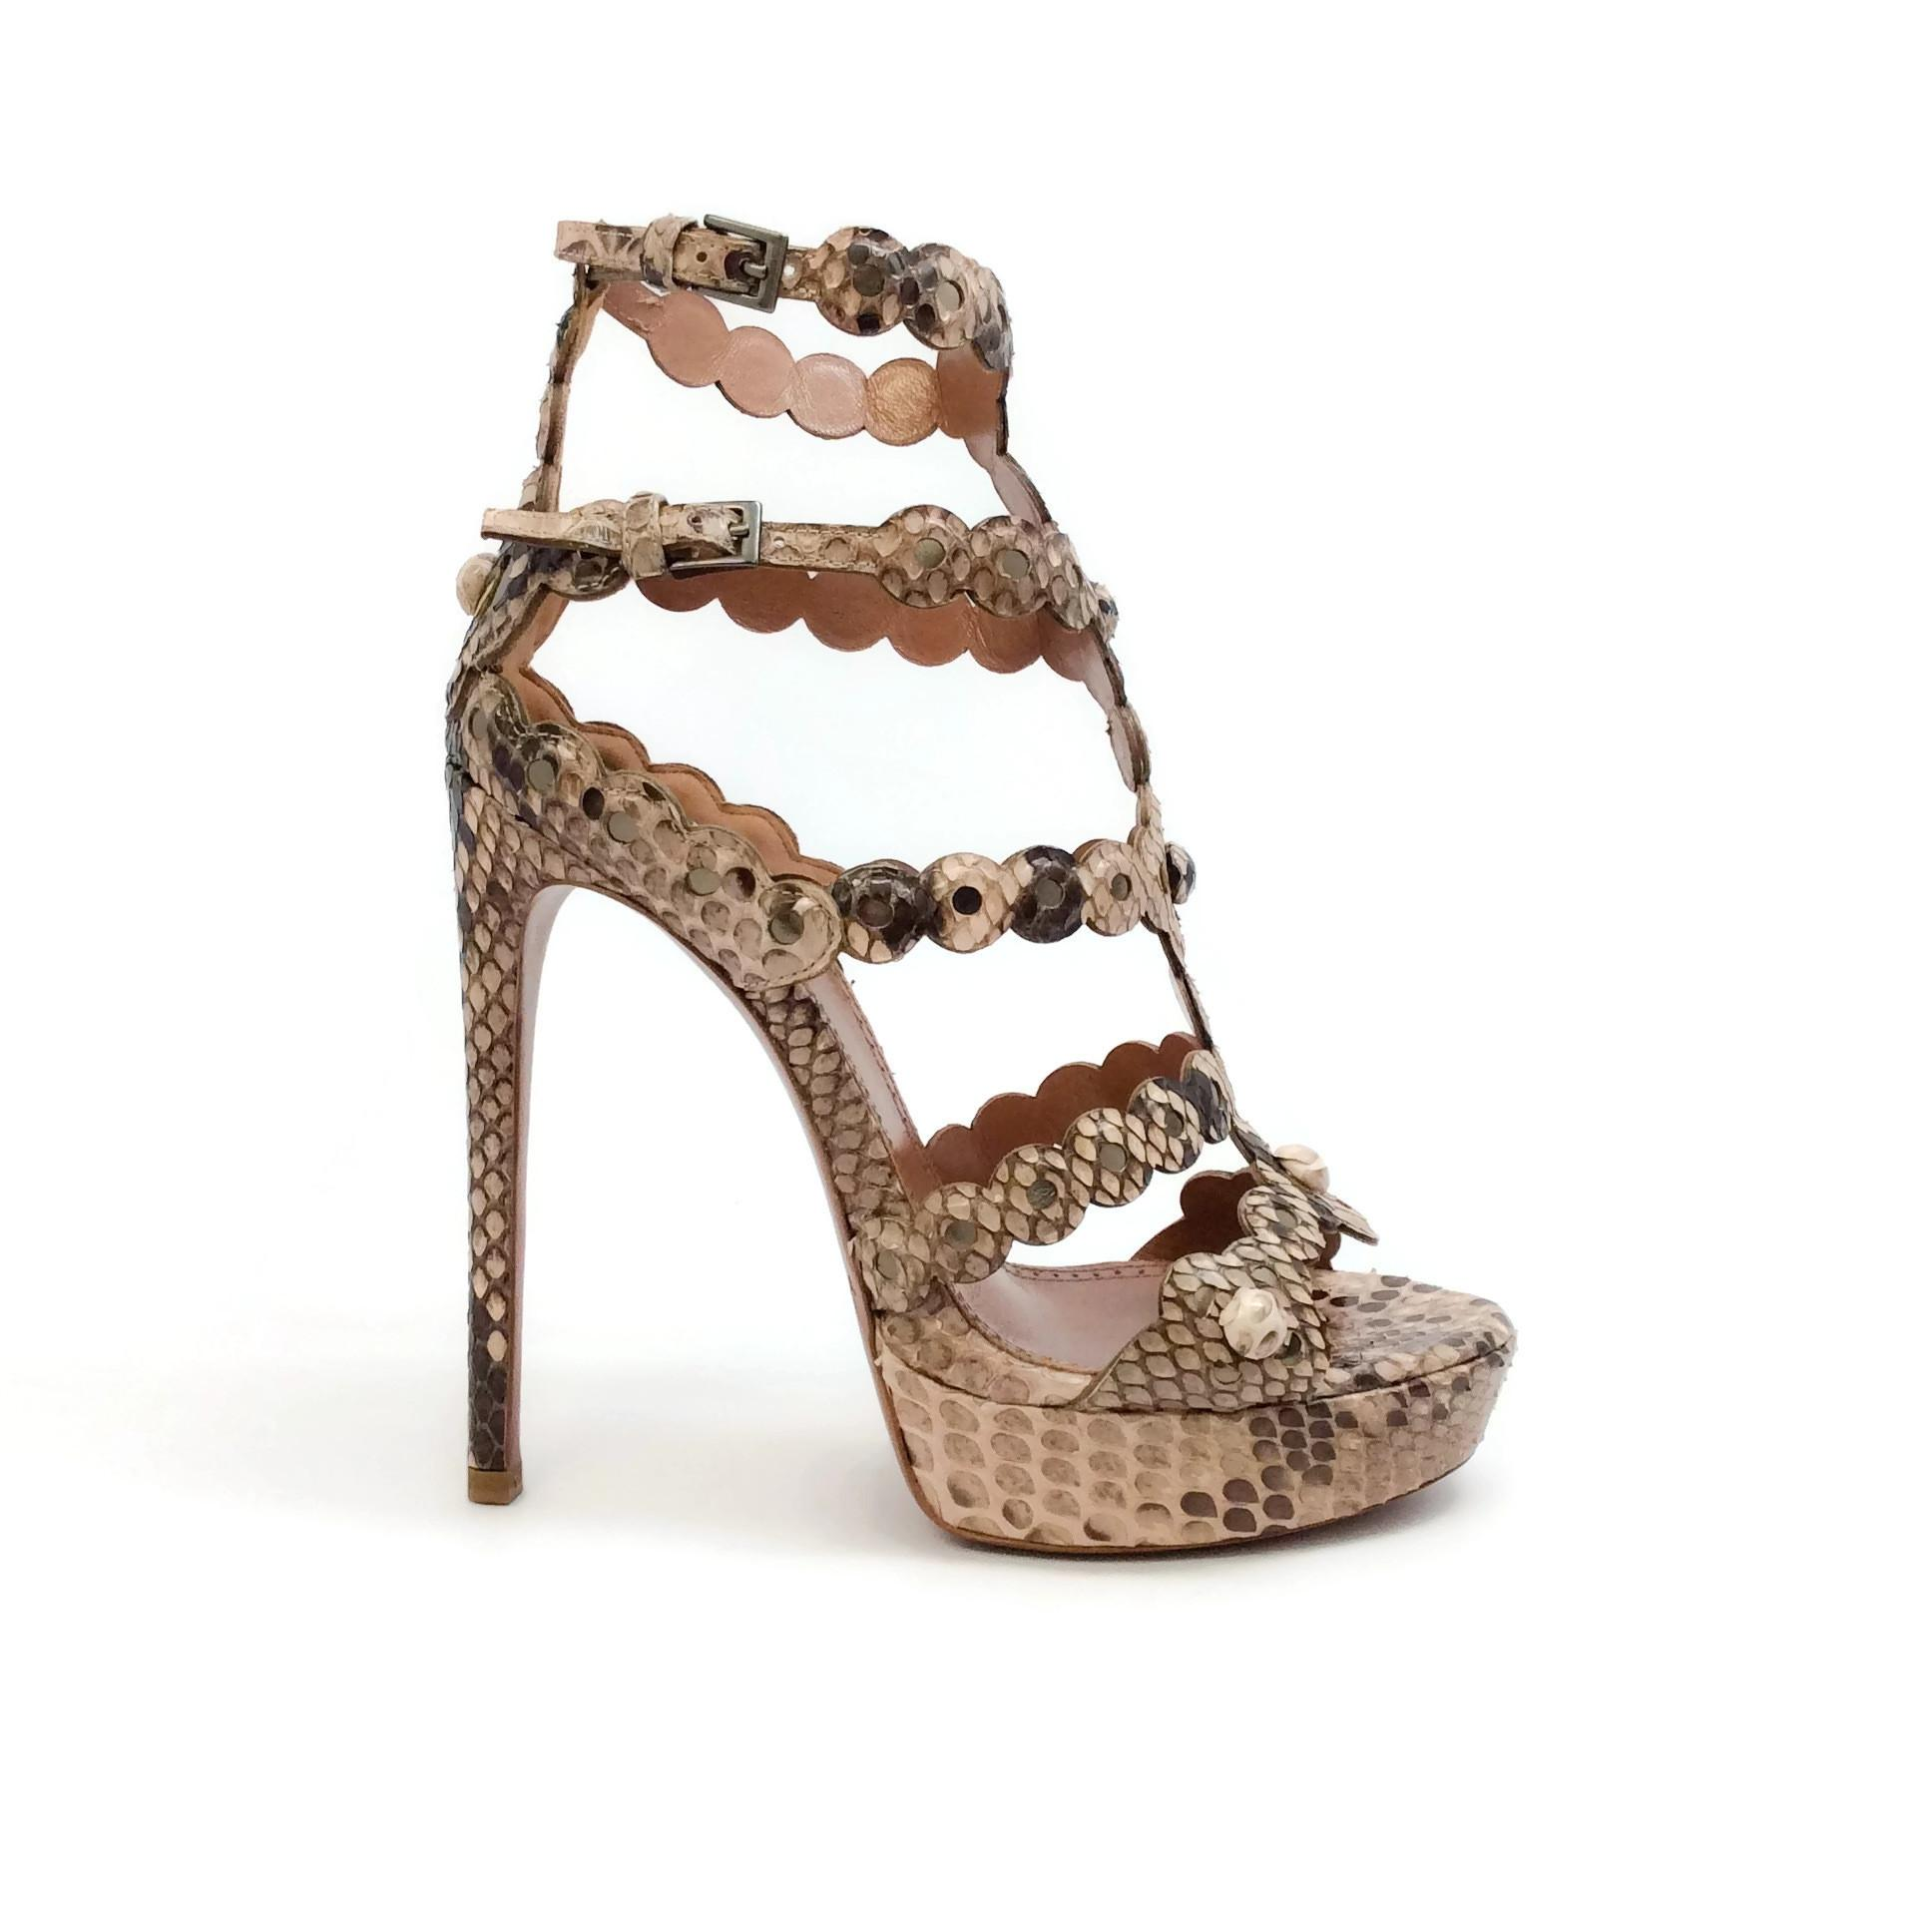 a03a657caa3 US 7.5 ALAÏA Tan   Brown Python Sandals Sandals Sandals Size EU 37.5 (Approx.  US 7.5 ...